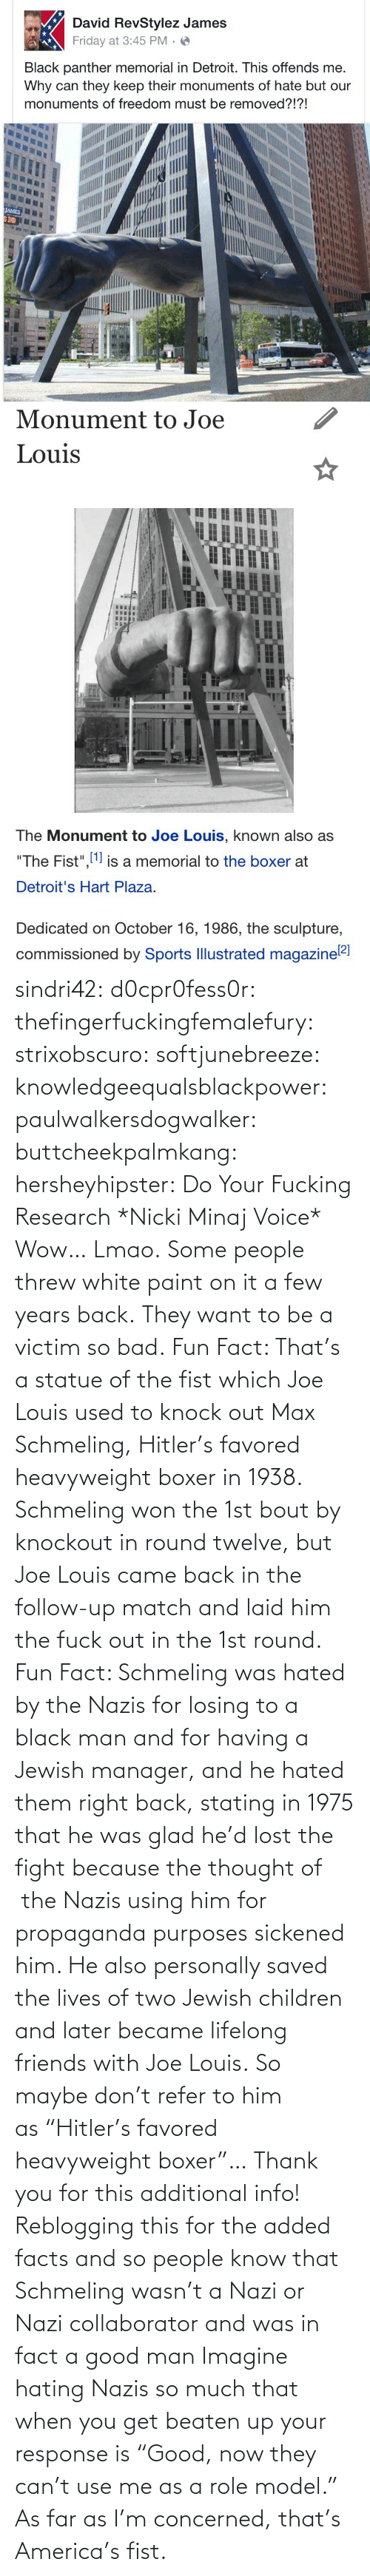 "two: sindri42:  d0cpr0fess0r:  thefingerfuckingfemalefury:  strixobscuro:  softjunebreeze:  knowledgeequalsblackpower:  paulwalkersdogwalker:   buttcheekpalmkang:   hersheyhipster:  Do Your Fucking Research *Nicki Minaj Voice*    Wow… Lmao.   Some people threw white paint on it a few years back.   They want to be a victim so bad.  Fun Fact: That's a statue of the fist which Joe Louis used to knock out Max Schmeling, Hitler's favored heavyweight boxer in 1938. Schmeling won the 1st bout by knockout in round twelve, but Joe Louis came back in the follow-up match and laid him the fuck out in the 1st round.  Fun Fact: Schmeling was hated by the Nazis for losing to a black man and for having a Jewish manager, and he hated them right back, stating in 1975 that he was glad he'd lost the fight because the thought of  the Nazis using him for propaganda purposes sickened him. He also personally saved the lives of two Jewish children and later became lifelong friends with Joe Louis. So maybe don't refer to him as ""Hitler's favored heavyweight boxer""…  Thank you for this additional info! Reblogging this for the added facts and so people know that Schmeling wasn't a Nazi or Nazi collaborator and was in fact a good man   Imagine hating Nazis so much that when you get beaten up your response is ""Good, now they can't use me as a role model.""  As far as I'm concerned, that's America's fist."